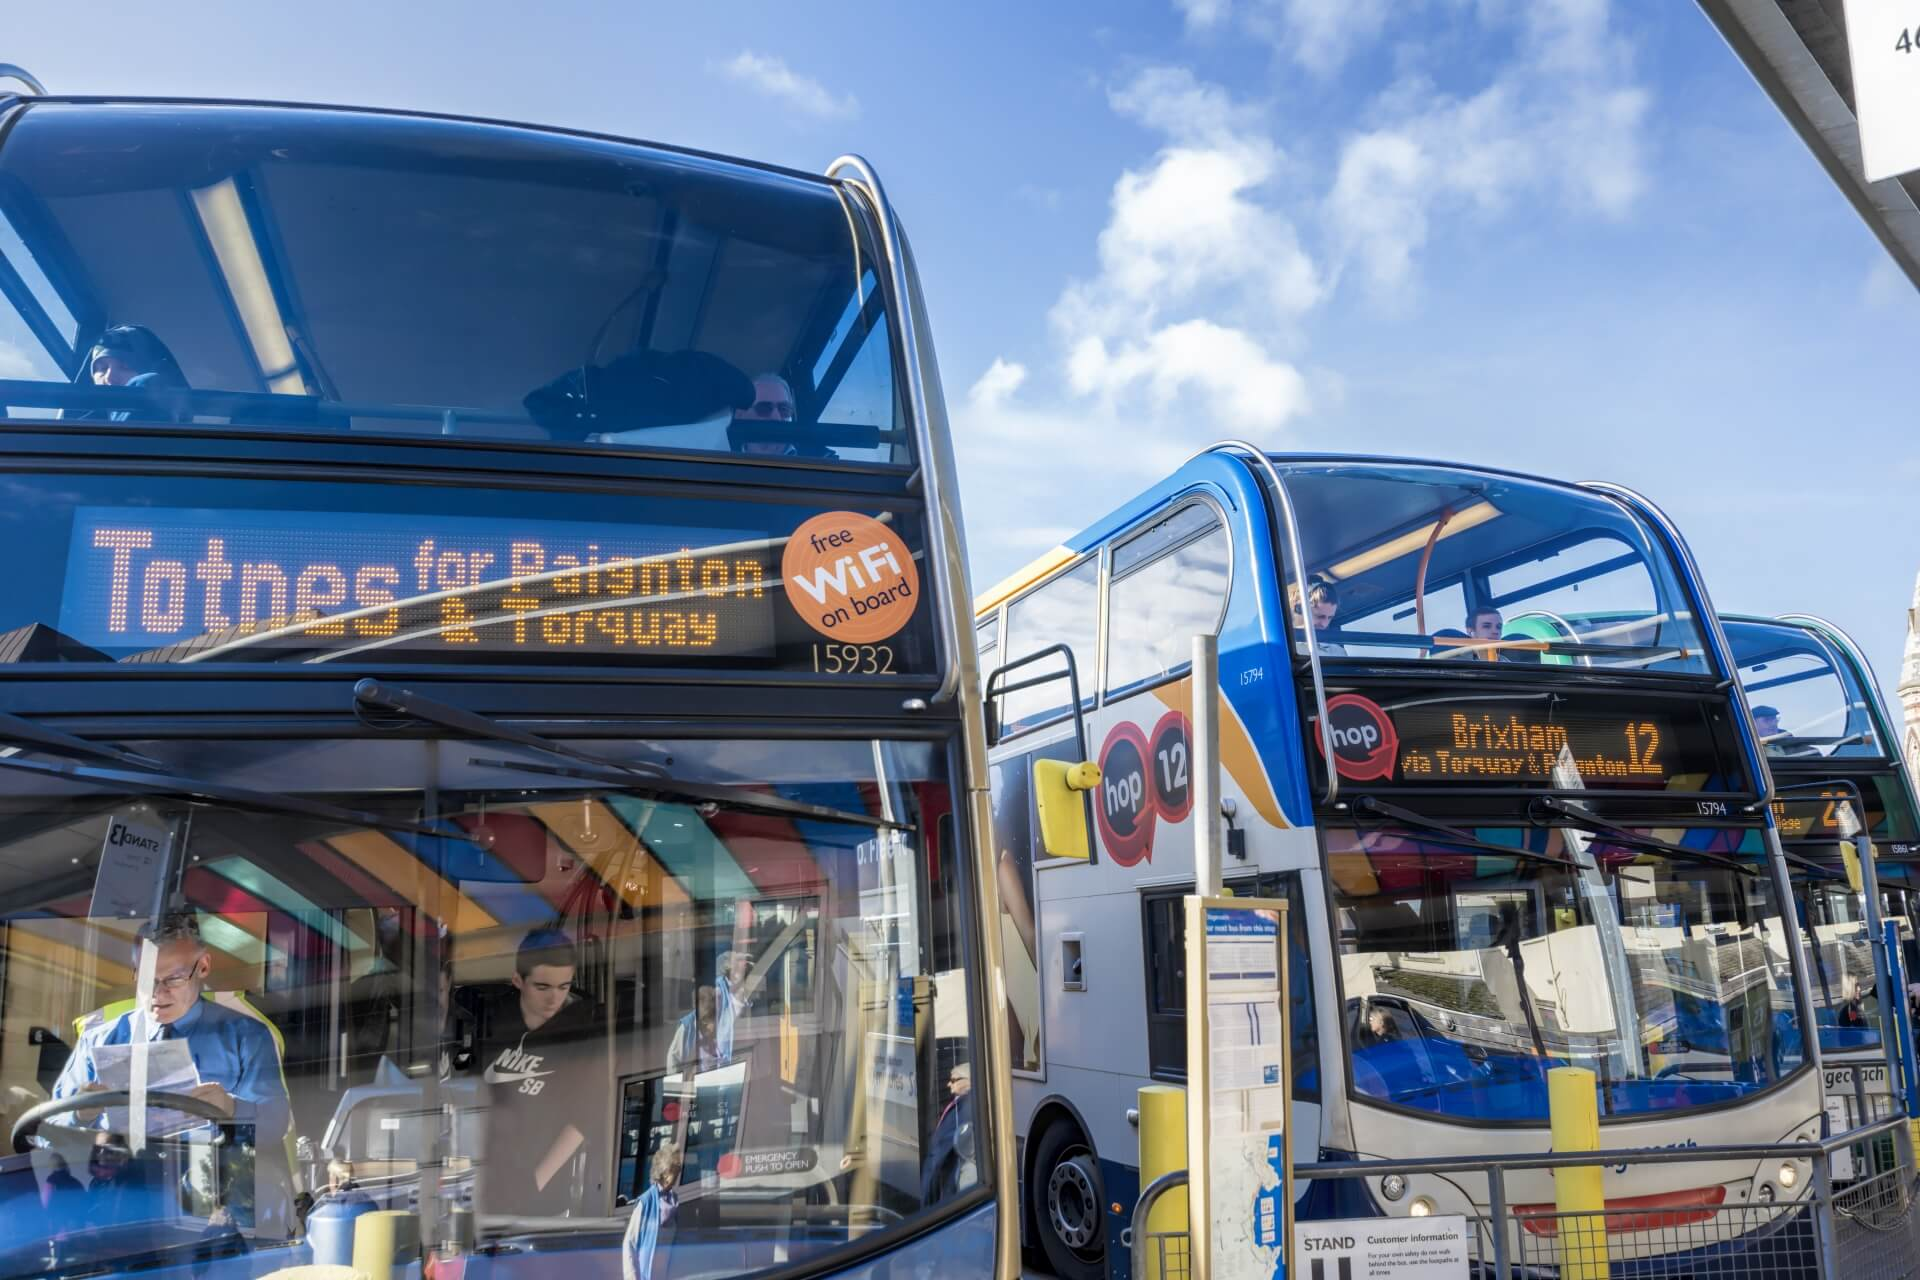 Bus Travel around Torquay and The English Riviera